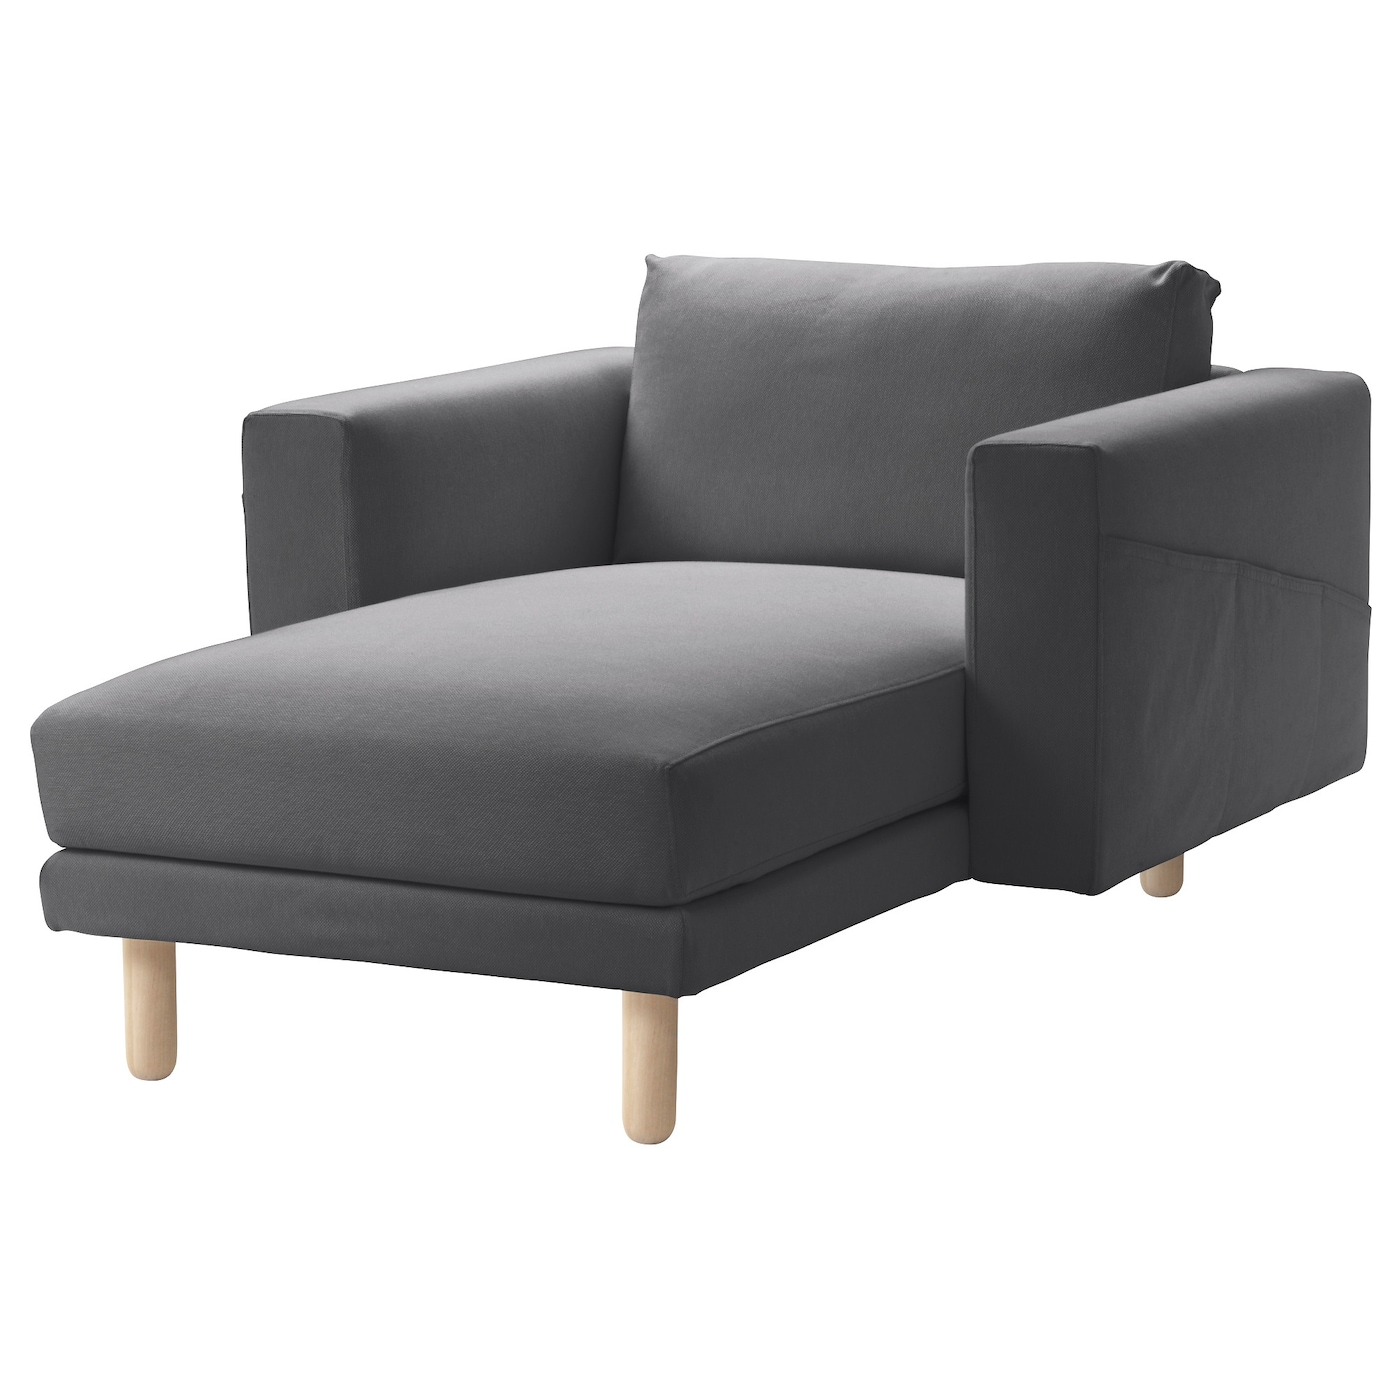 norsborg chaise longue finnsta dark grey birch ikea. Black Bedroom Furniture Sets. Home Design Ideas